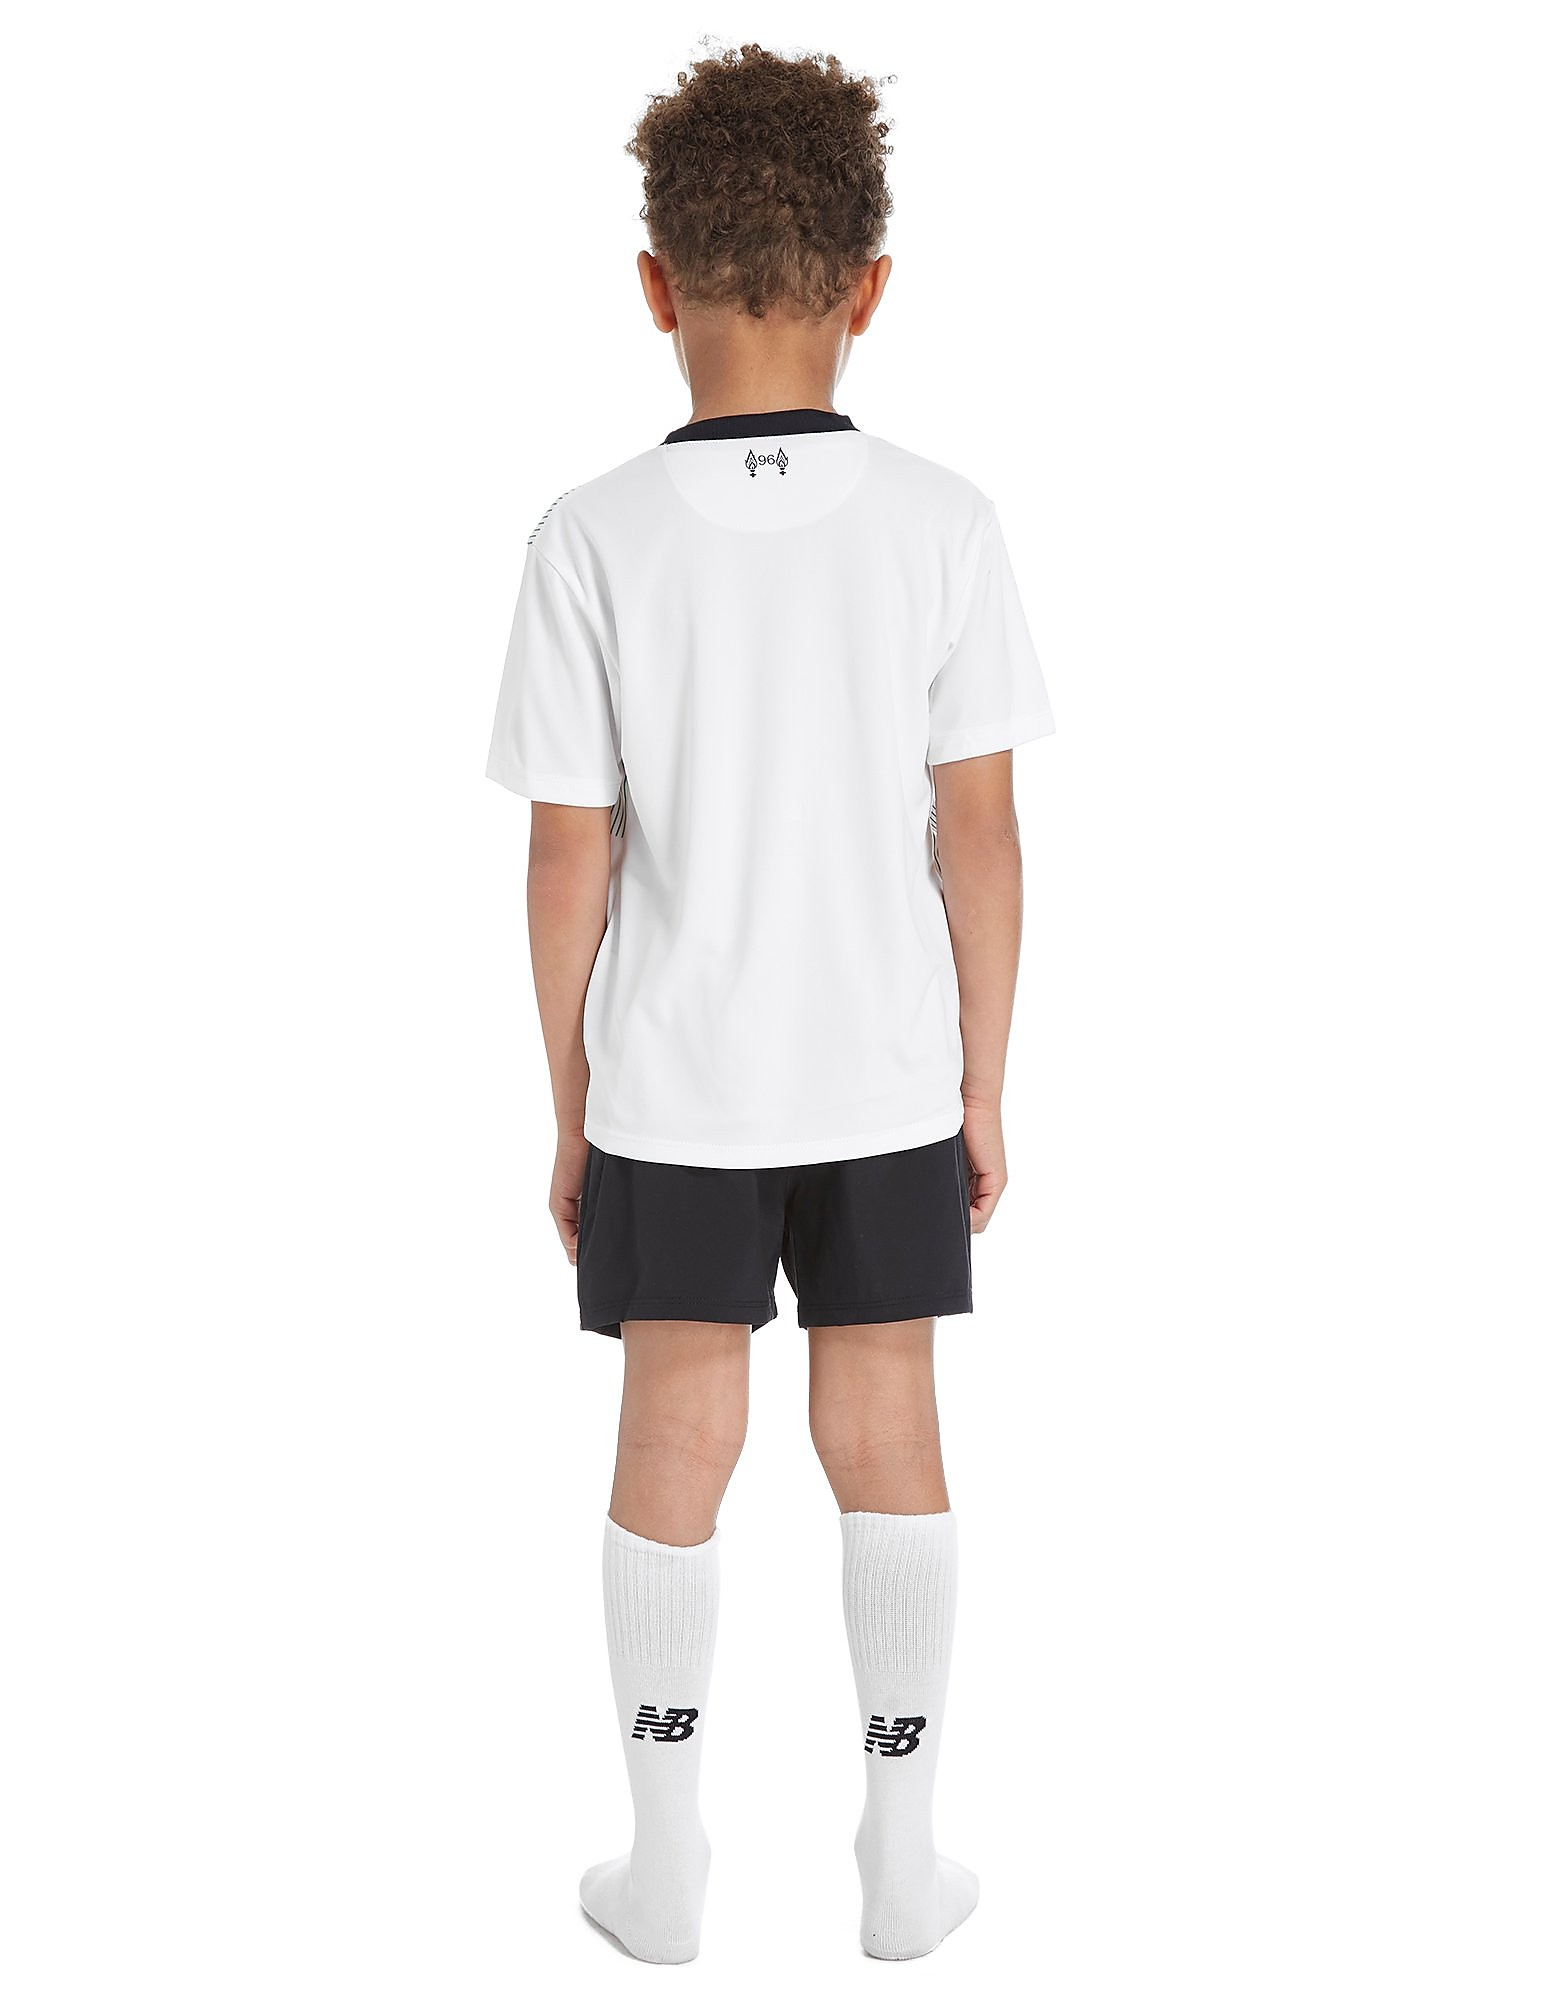 New Balance Liverpool FC 2017/18 Away Kit Children